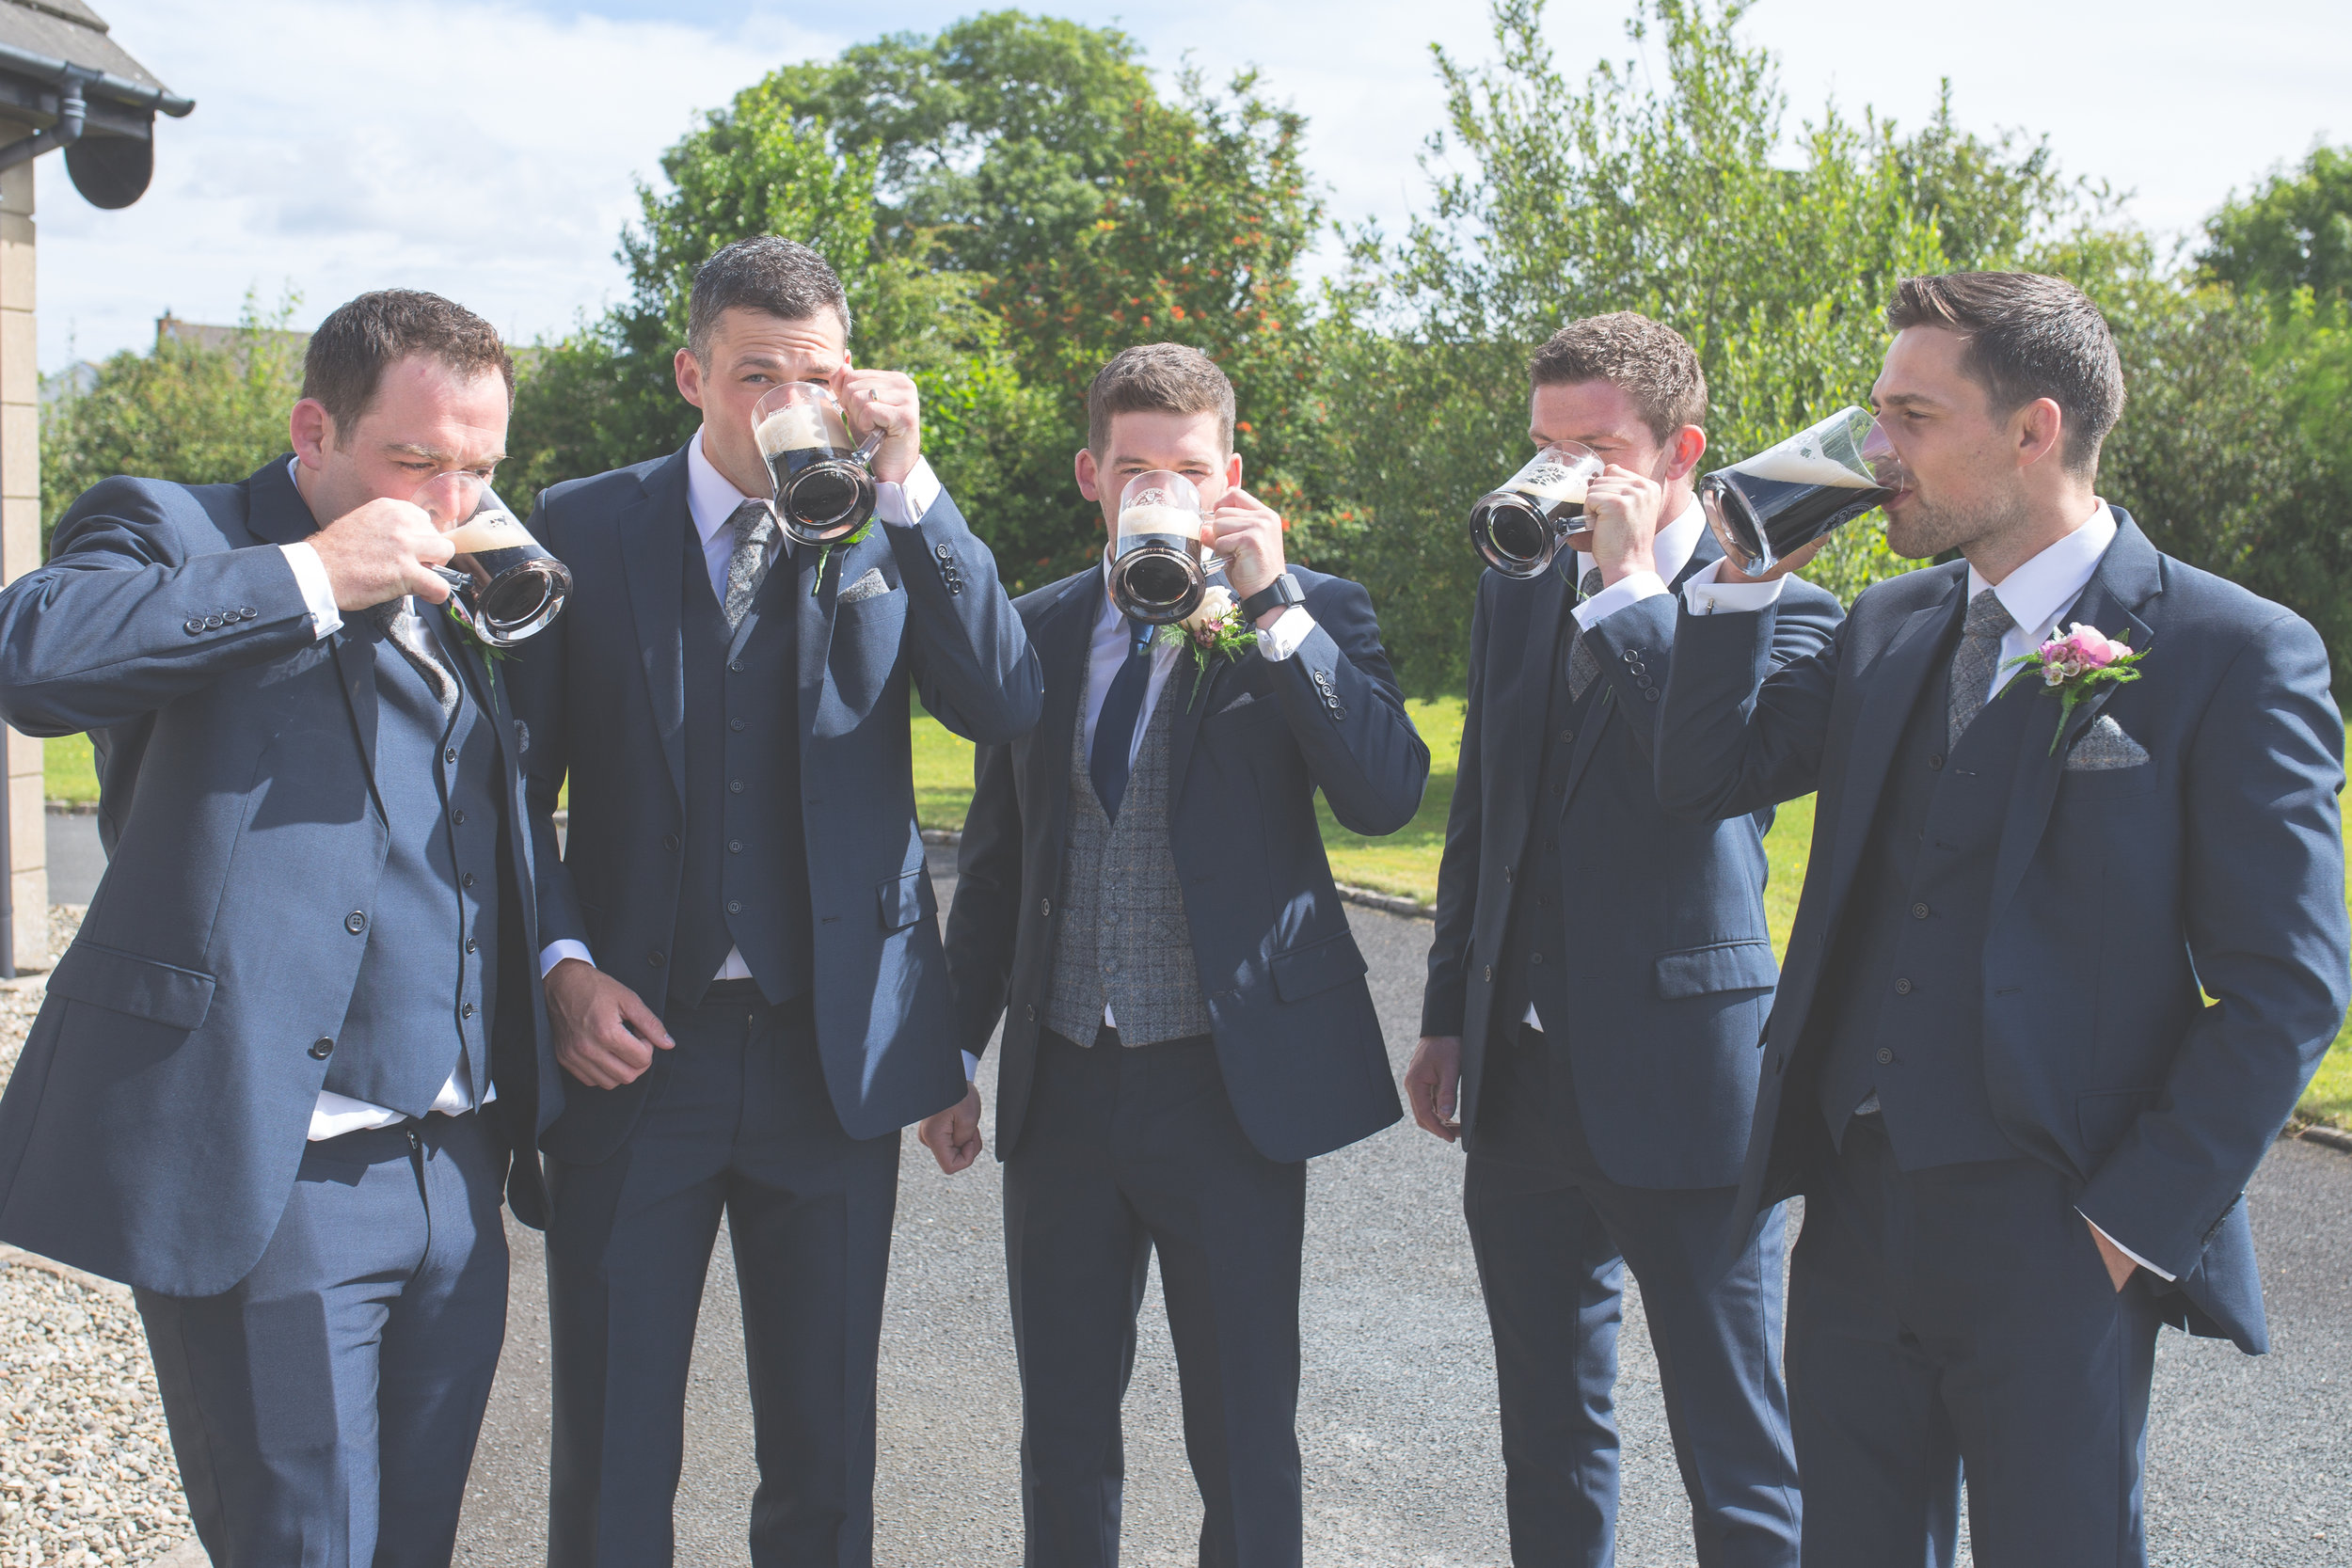 Brian McEwan Wedding Photography | Carol-Anne & Sean | Groom & Groomsmen-91.jpg